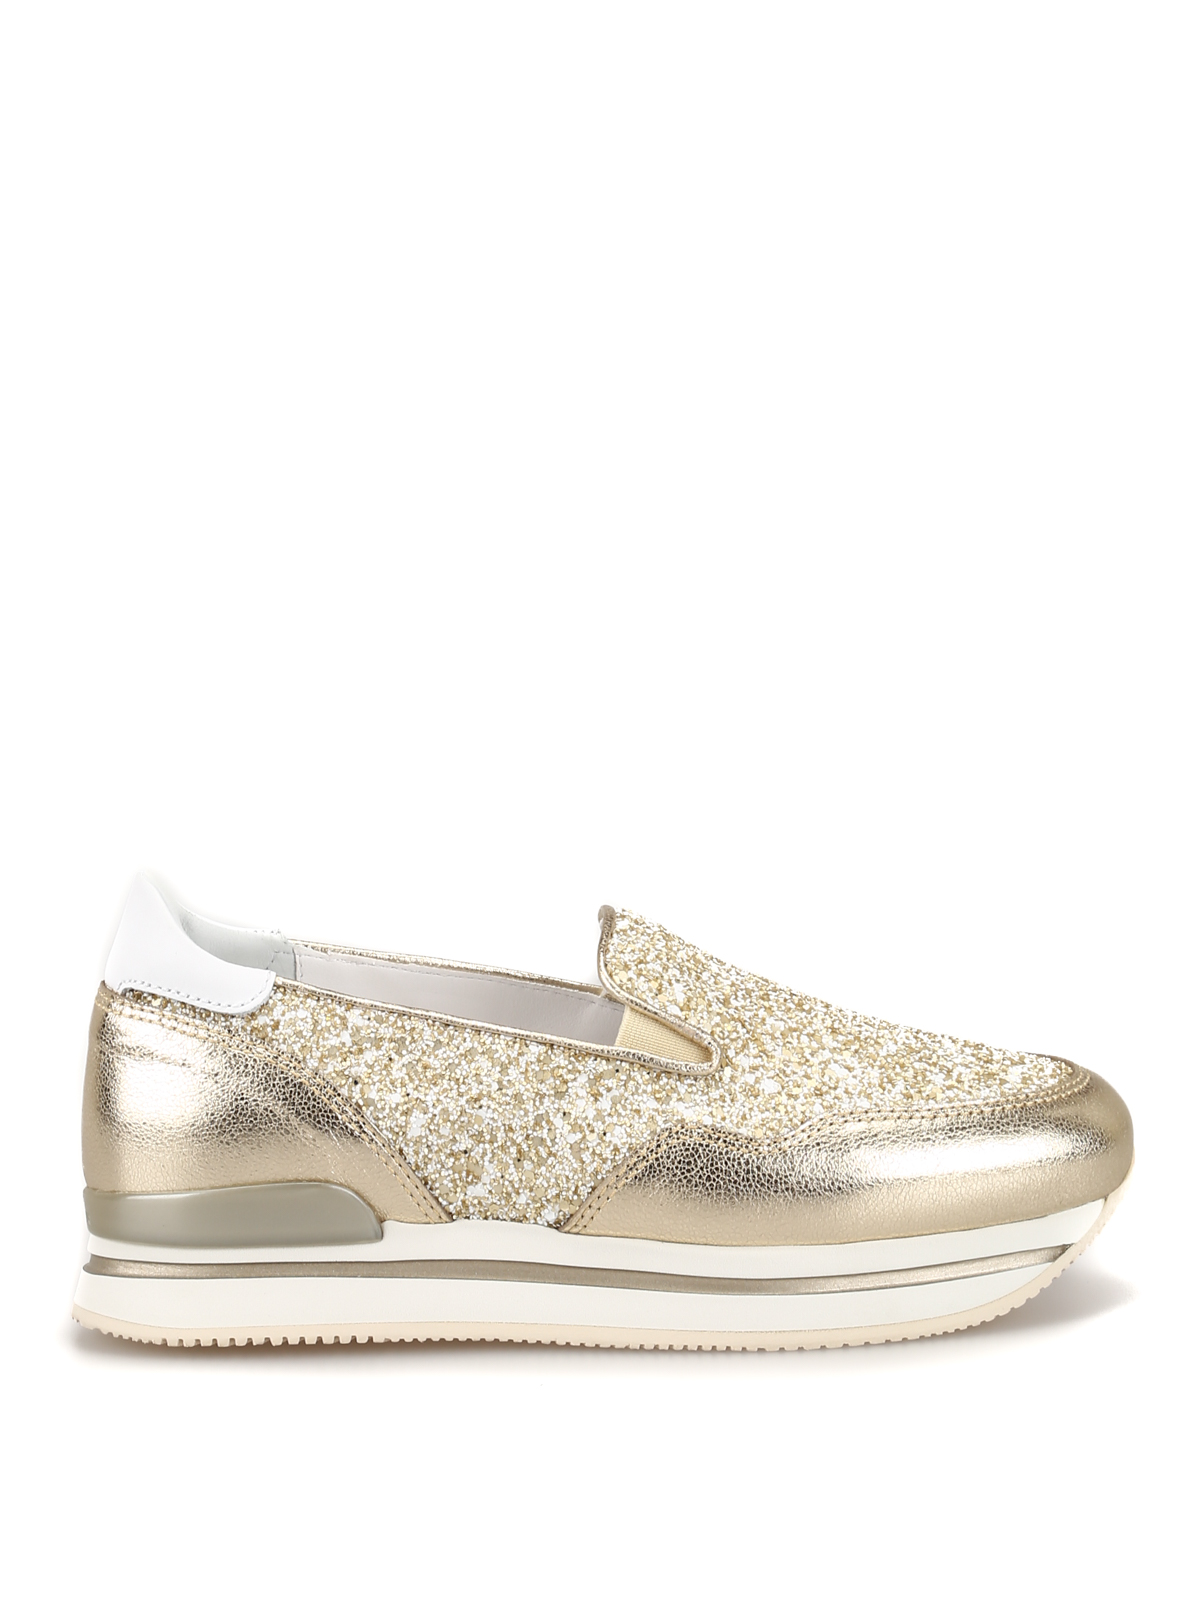 Trainers Hogan - H222 gold leather and glitter slip-ons ...